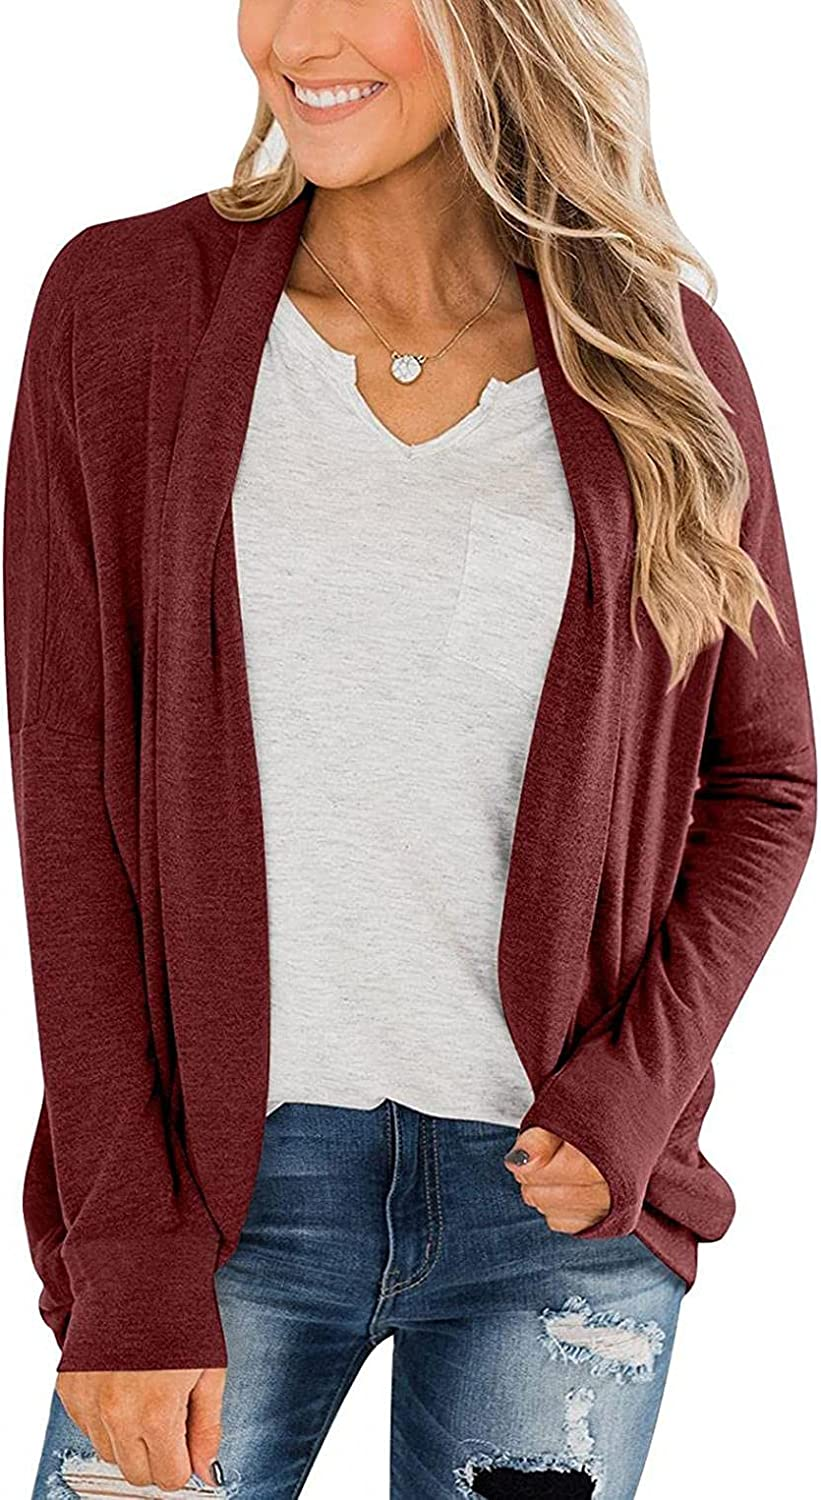 Eduavar Sweaters for Women Cardigan Long Sleeve Cable Knit Sweater Open Front Cardigan Tops Comfy Casual Loose Thin Coat